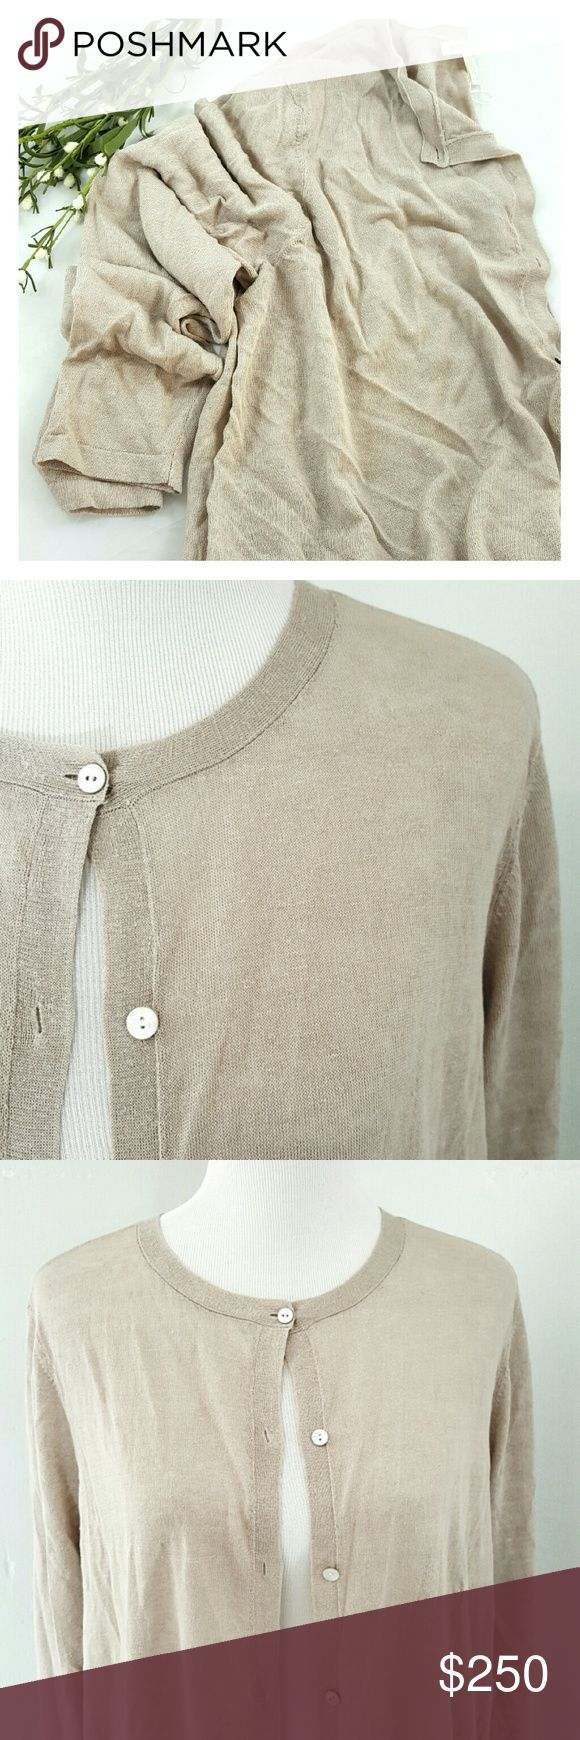 EILEEN FISHER Lightweight Organic Cardigan Amazing lightweight cardigan by Eileen Fisher, perfect for every season! Natural bone color, long button down, long sleeve, italian yarn, fine organic linen crepe knit.  Brand new with tags from Nordstroms.  Size XL Eileen Fisher Sweaters Cardigans